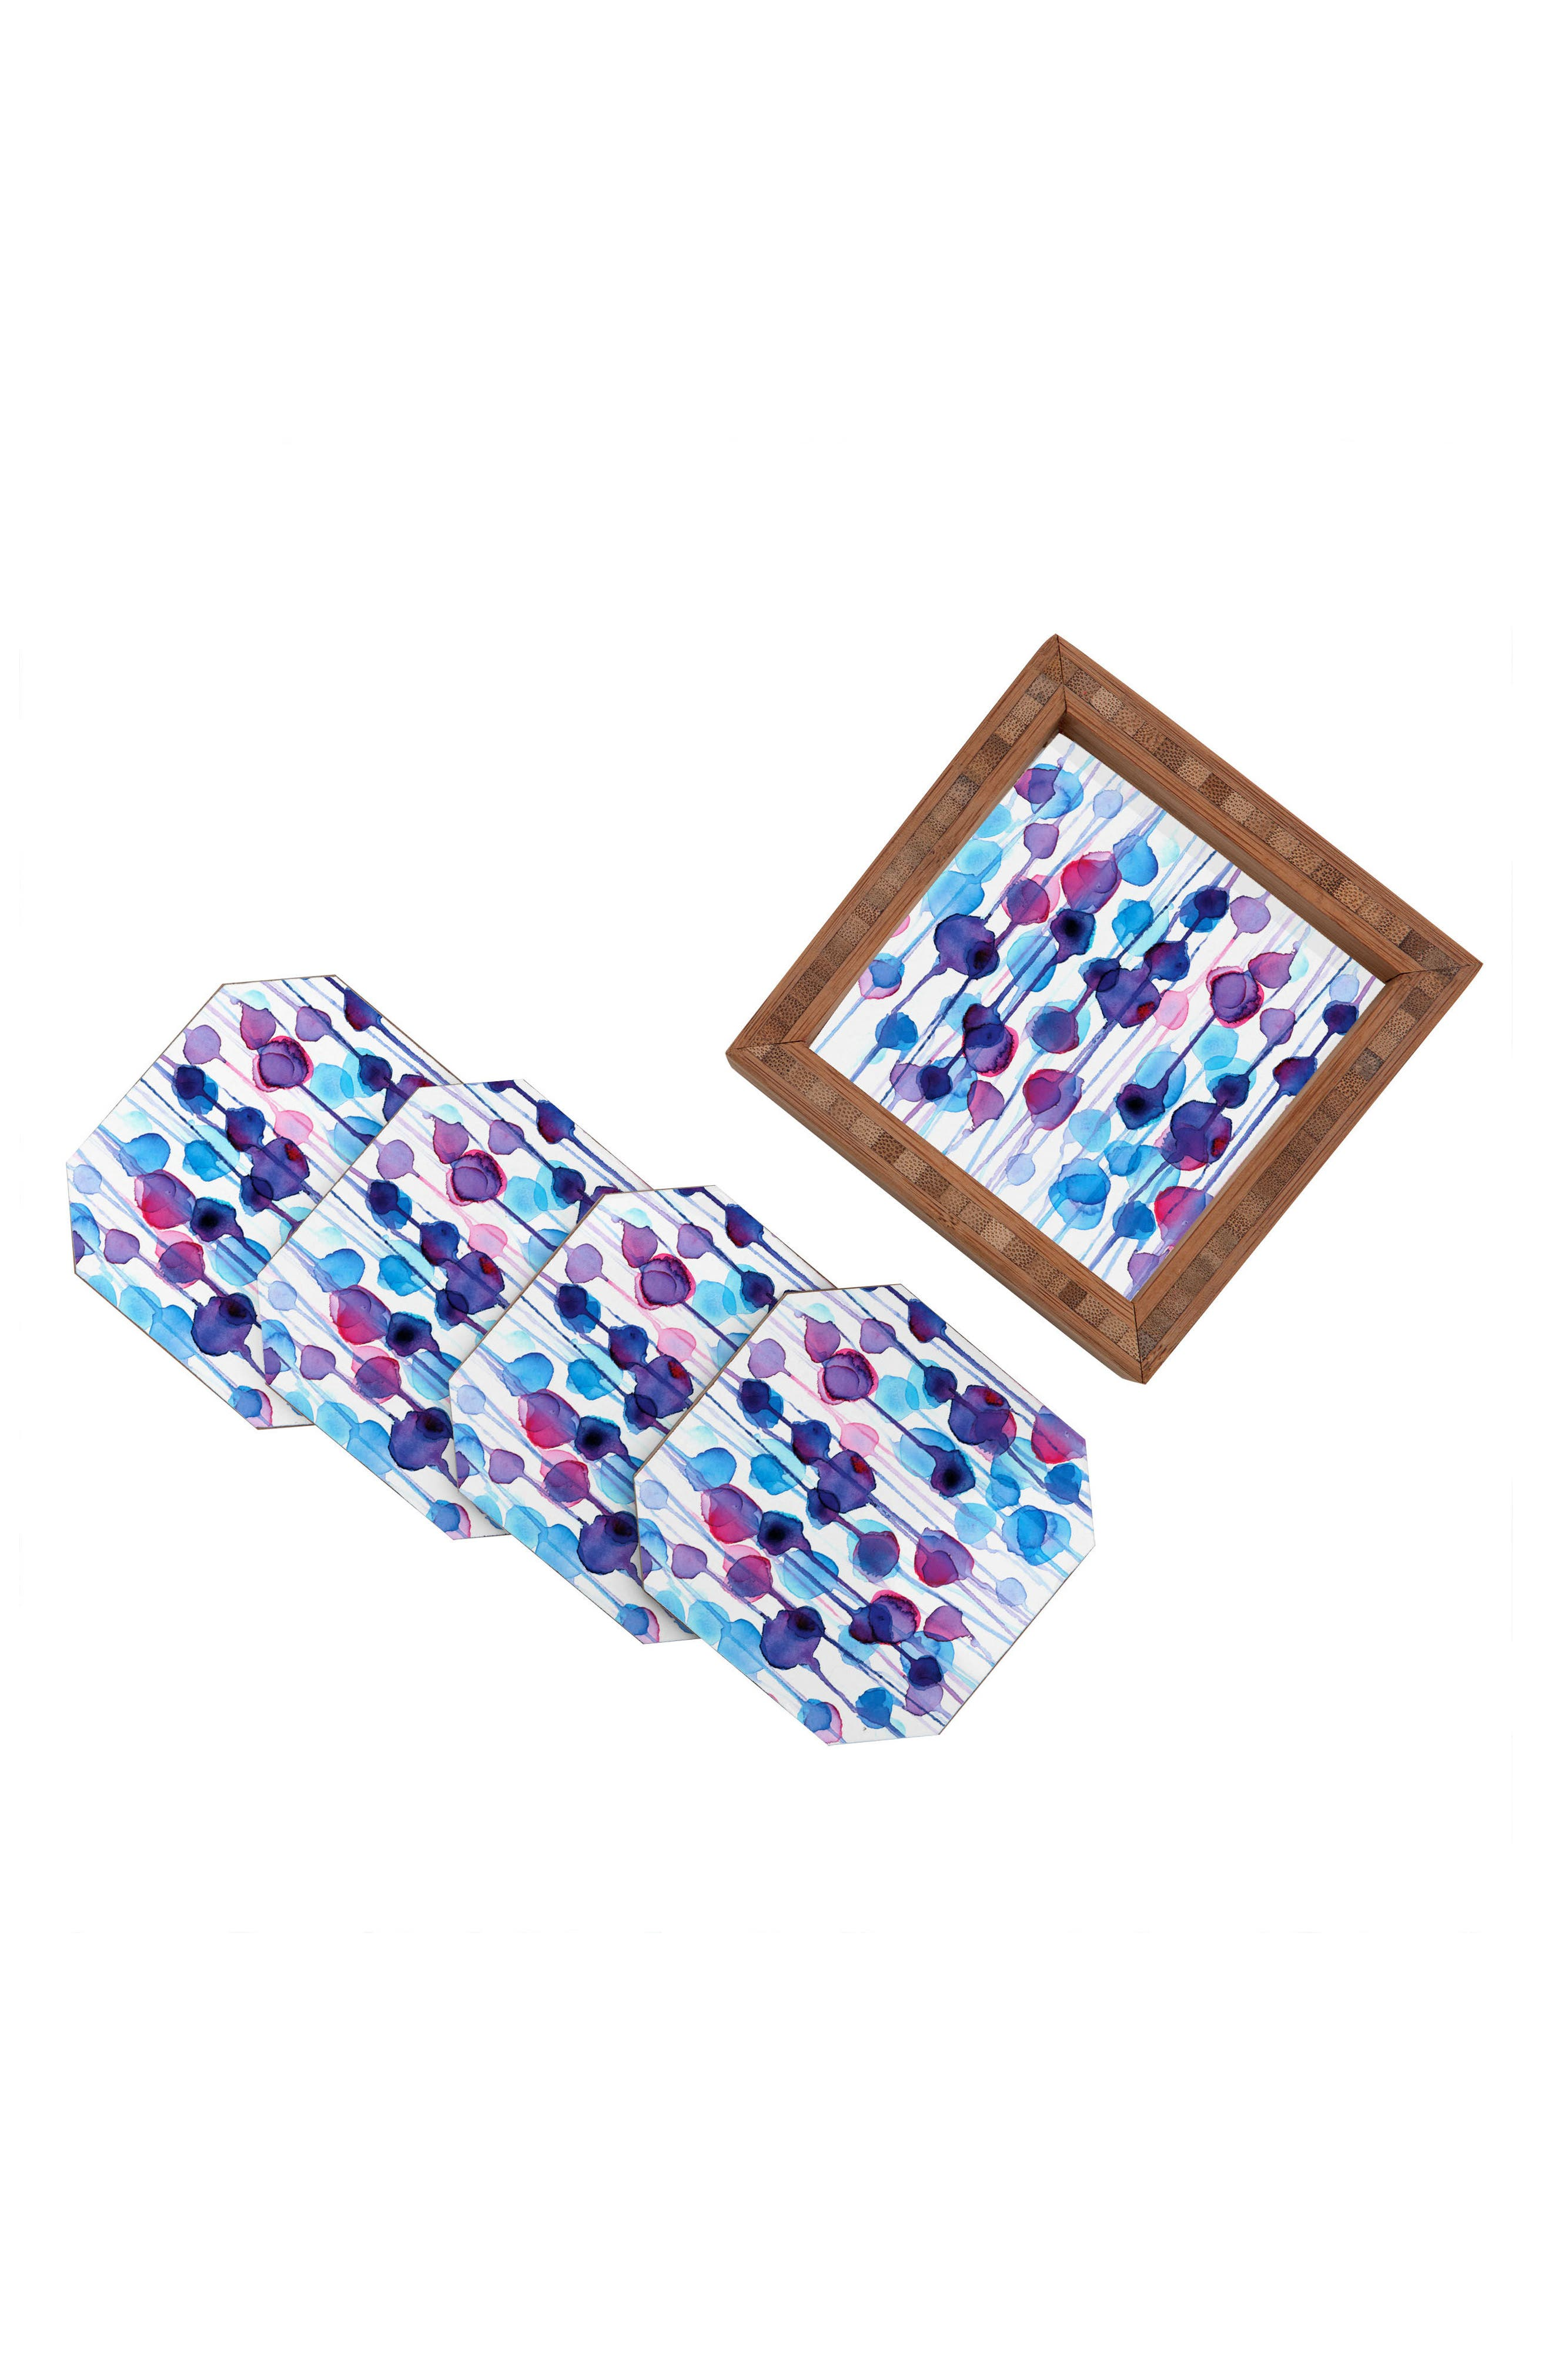 Abstract Set of 4 Coasters,                             Alternate thumbnail 3, color,                             400